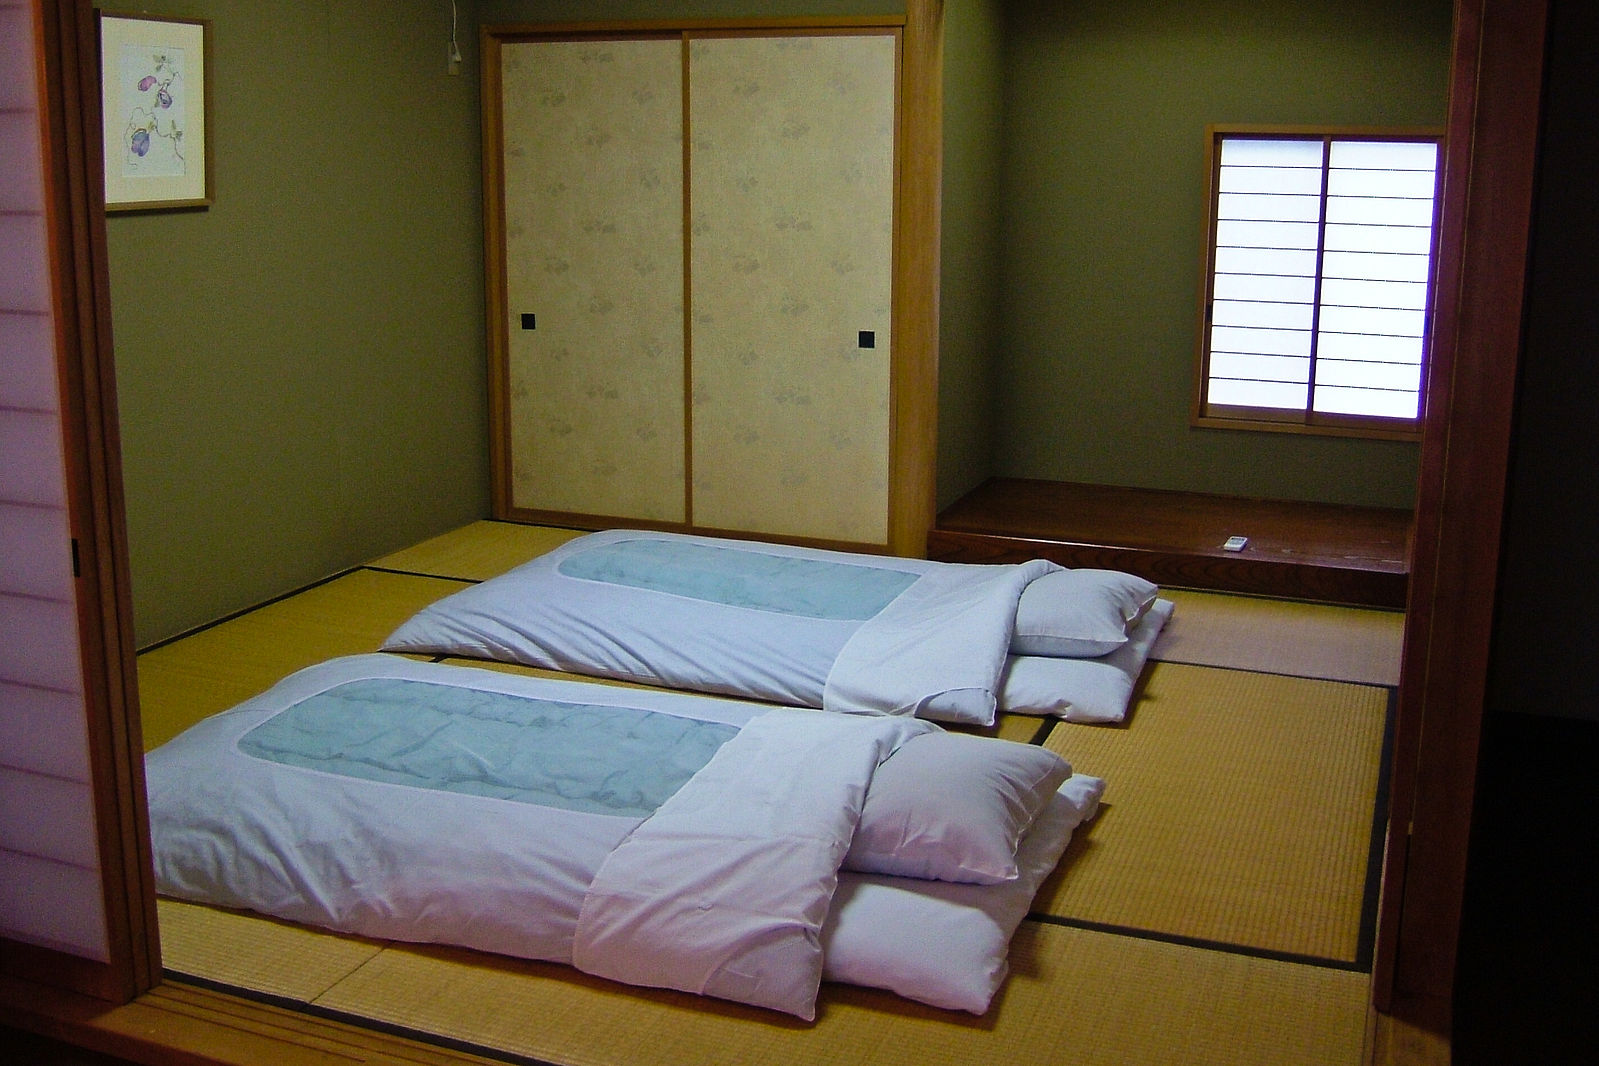 Difference Between a Sleeper Sofa and a Futon